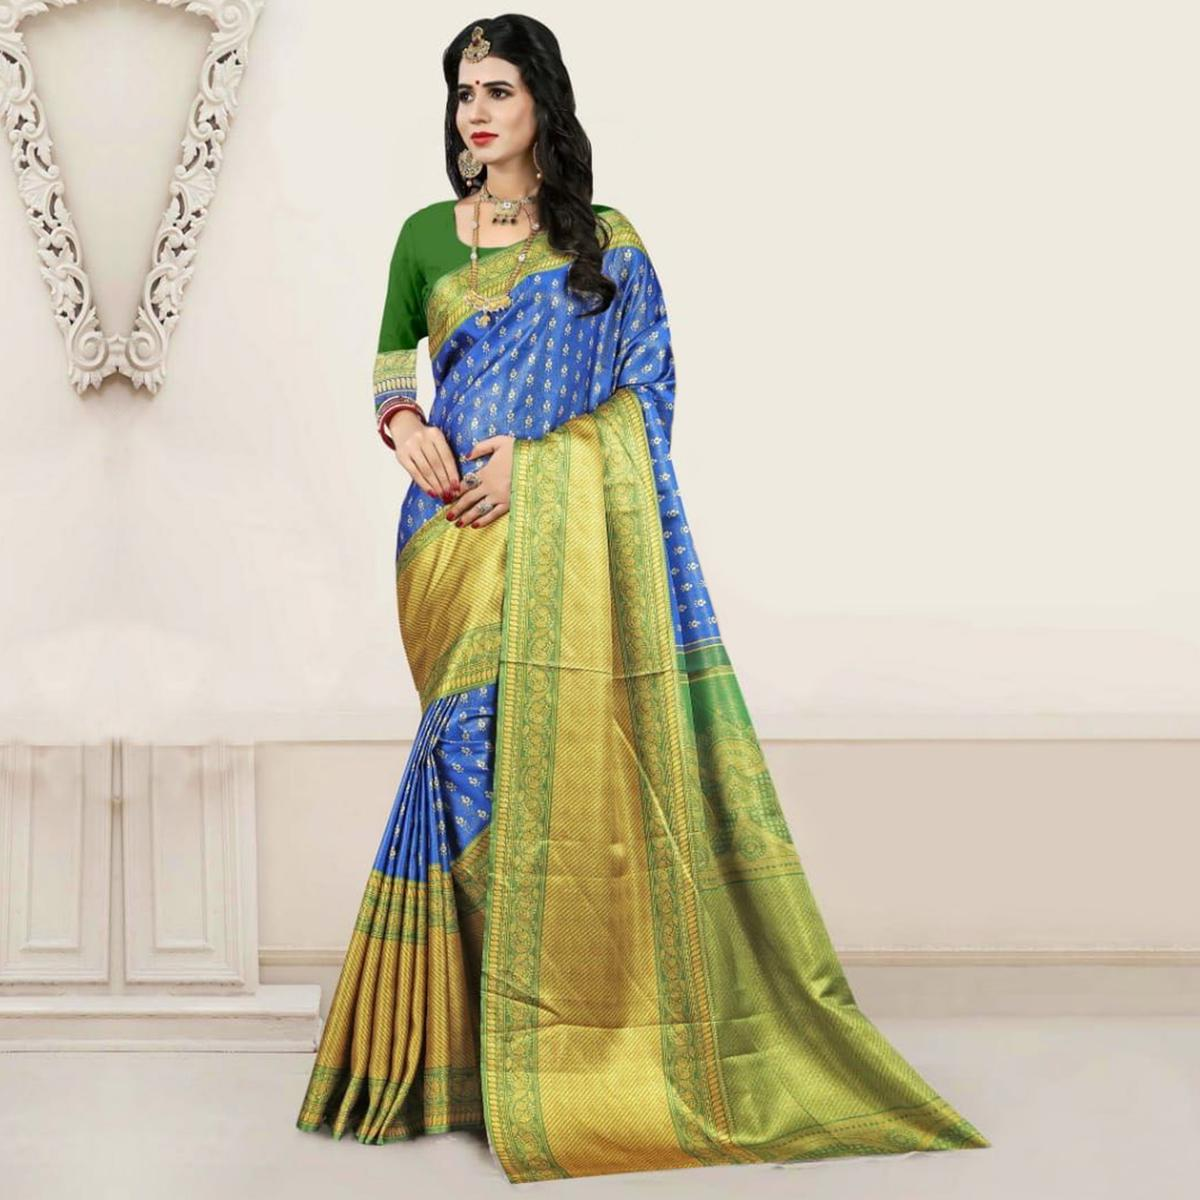 Glorious Blue - Green Colored Festive Wear Digital Printed Tussar Silk Saree